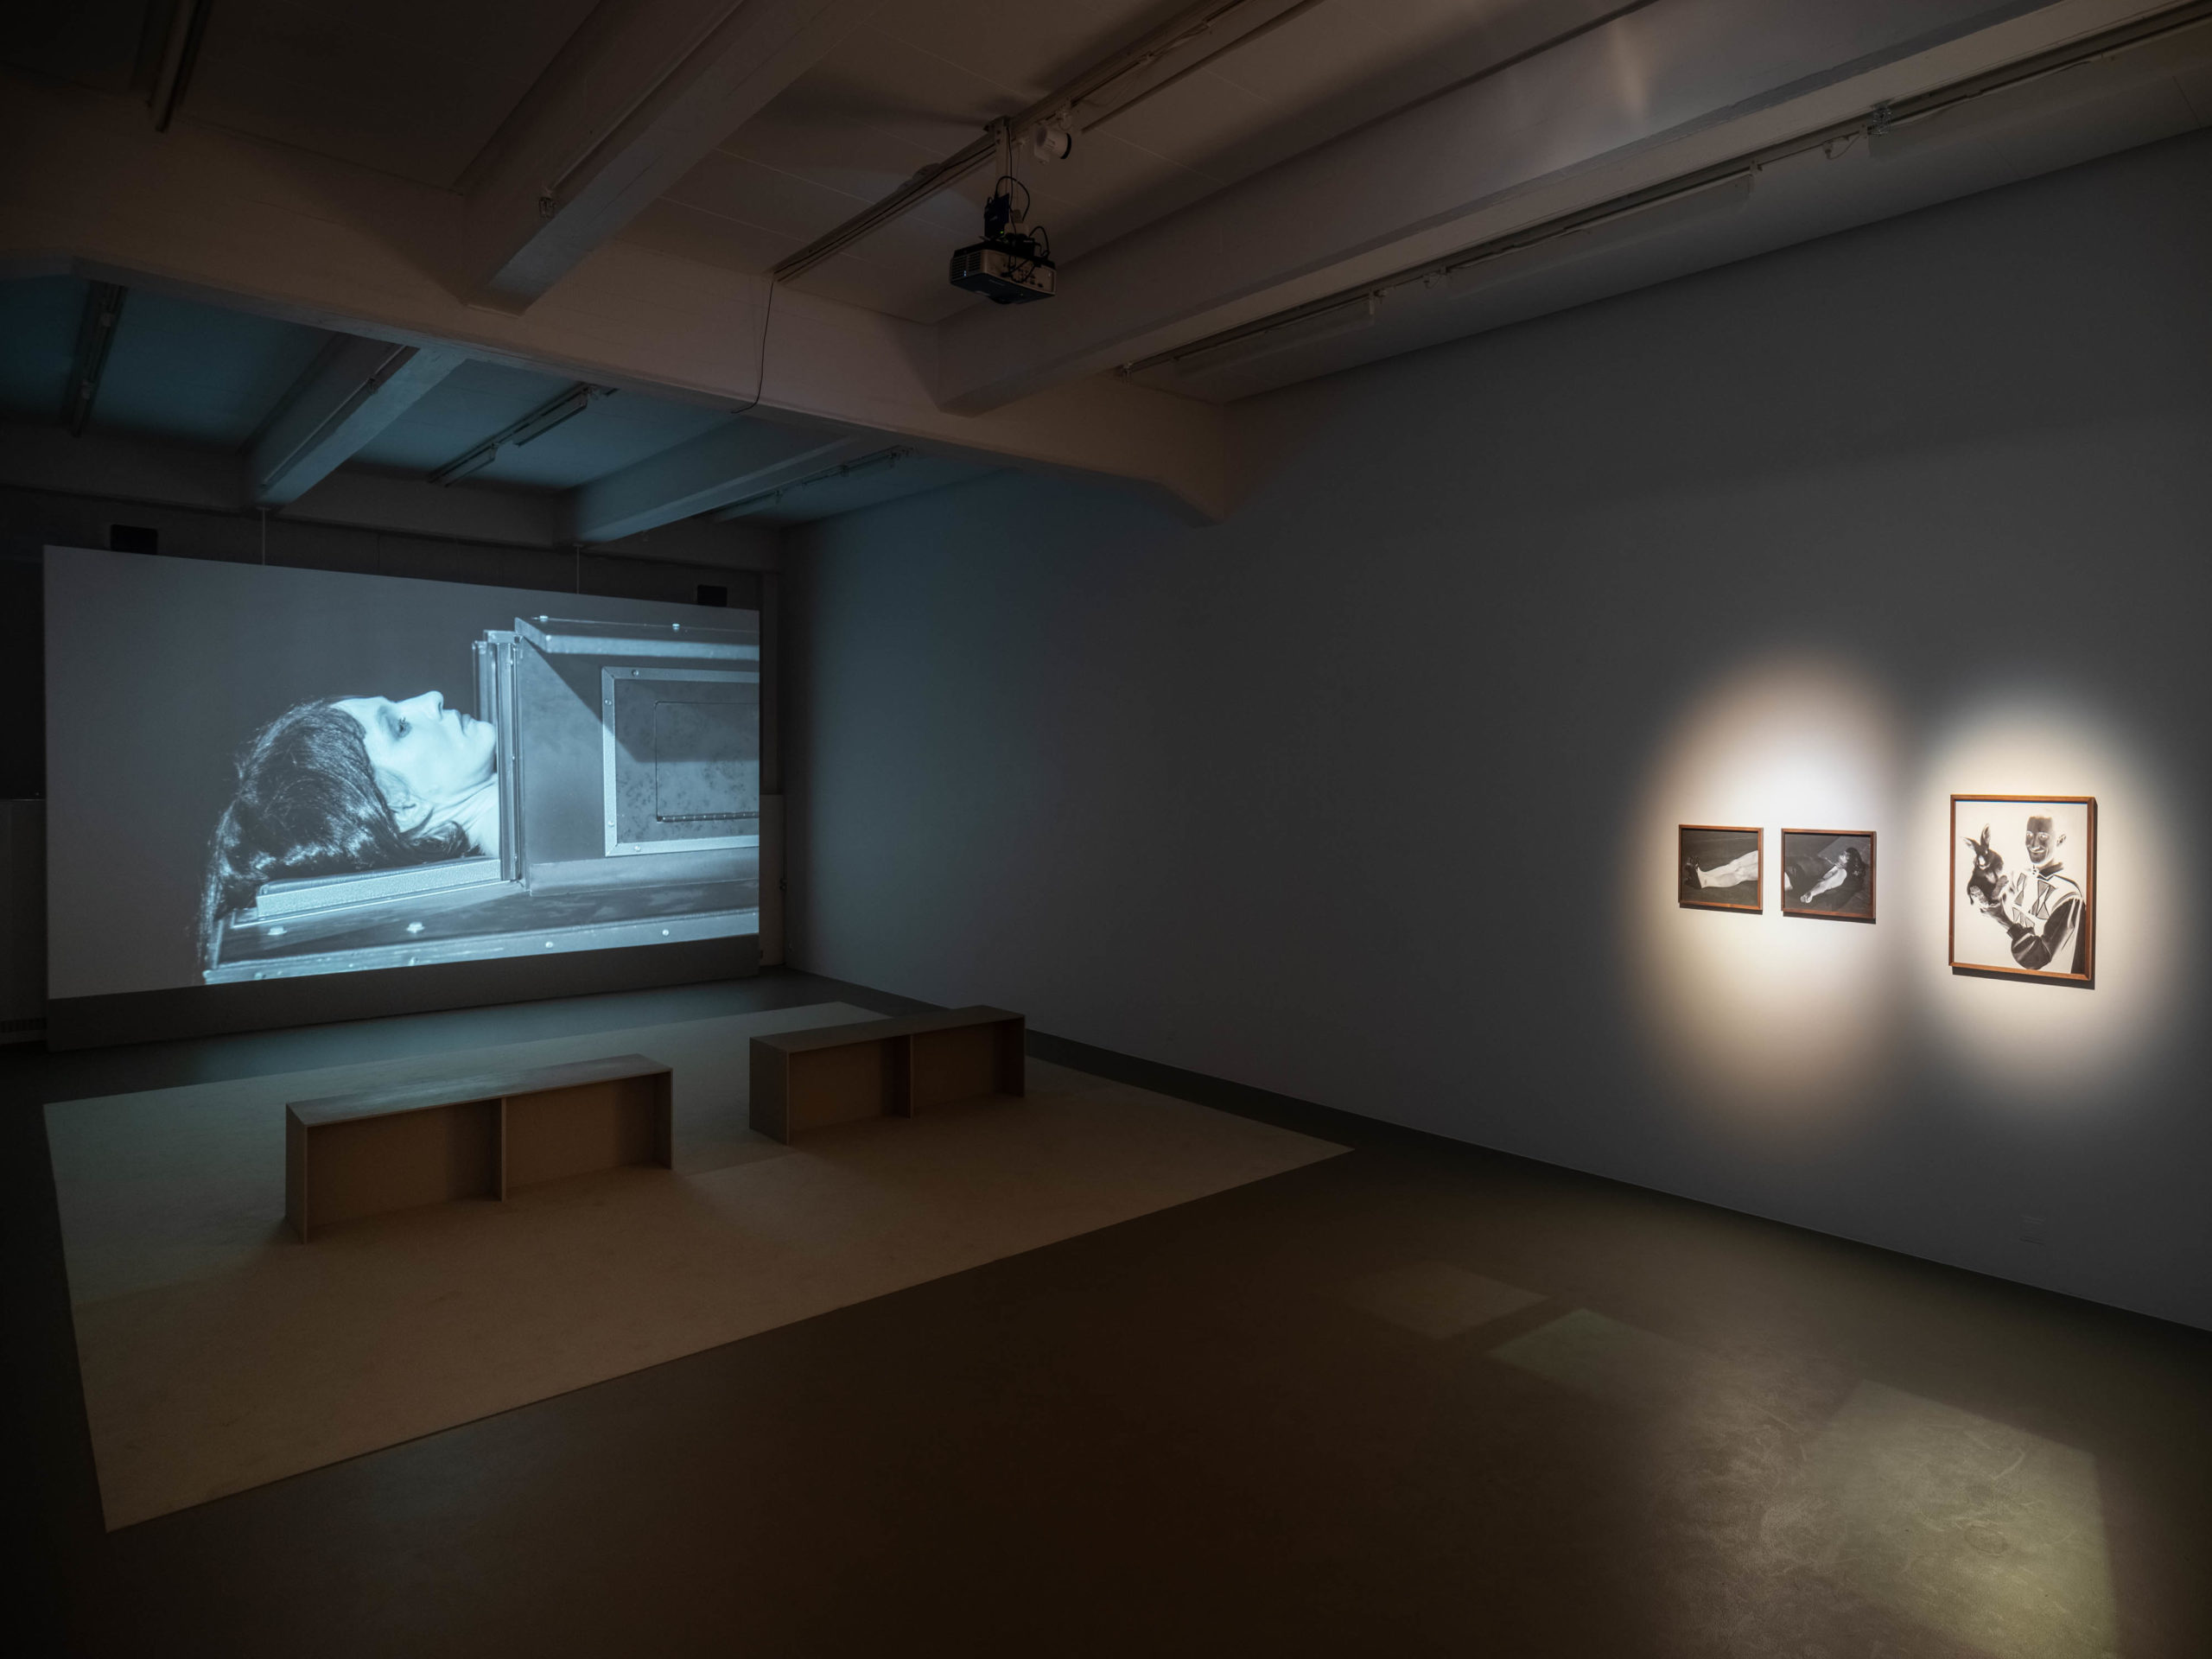 Installation view, Tova Mozard, The Mismade Girl, 2020, Cecilia Hillström Gallery. Photo: Jean-Baptiste Béranger